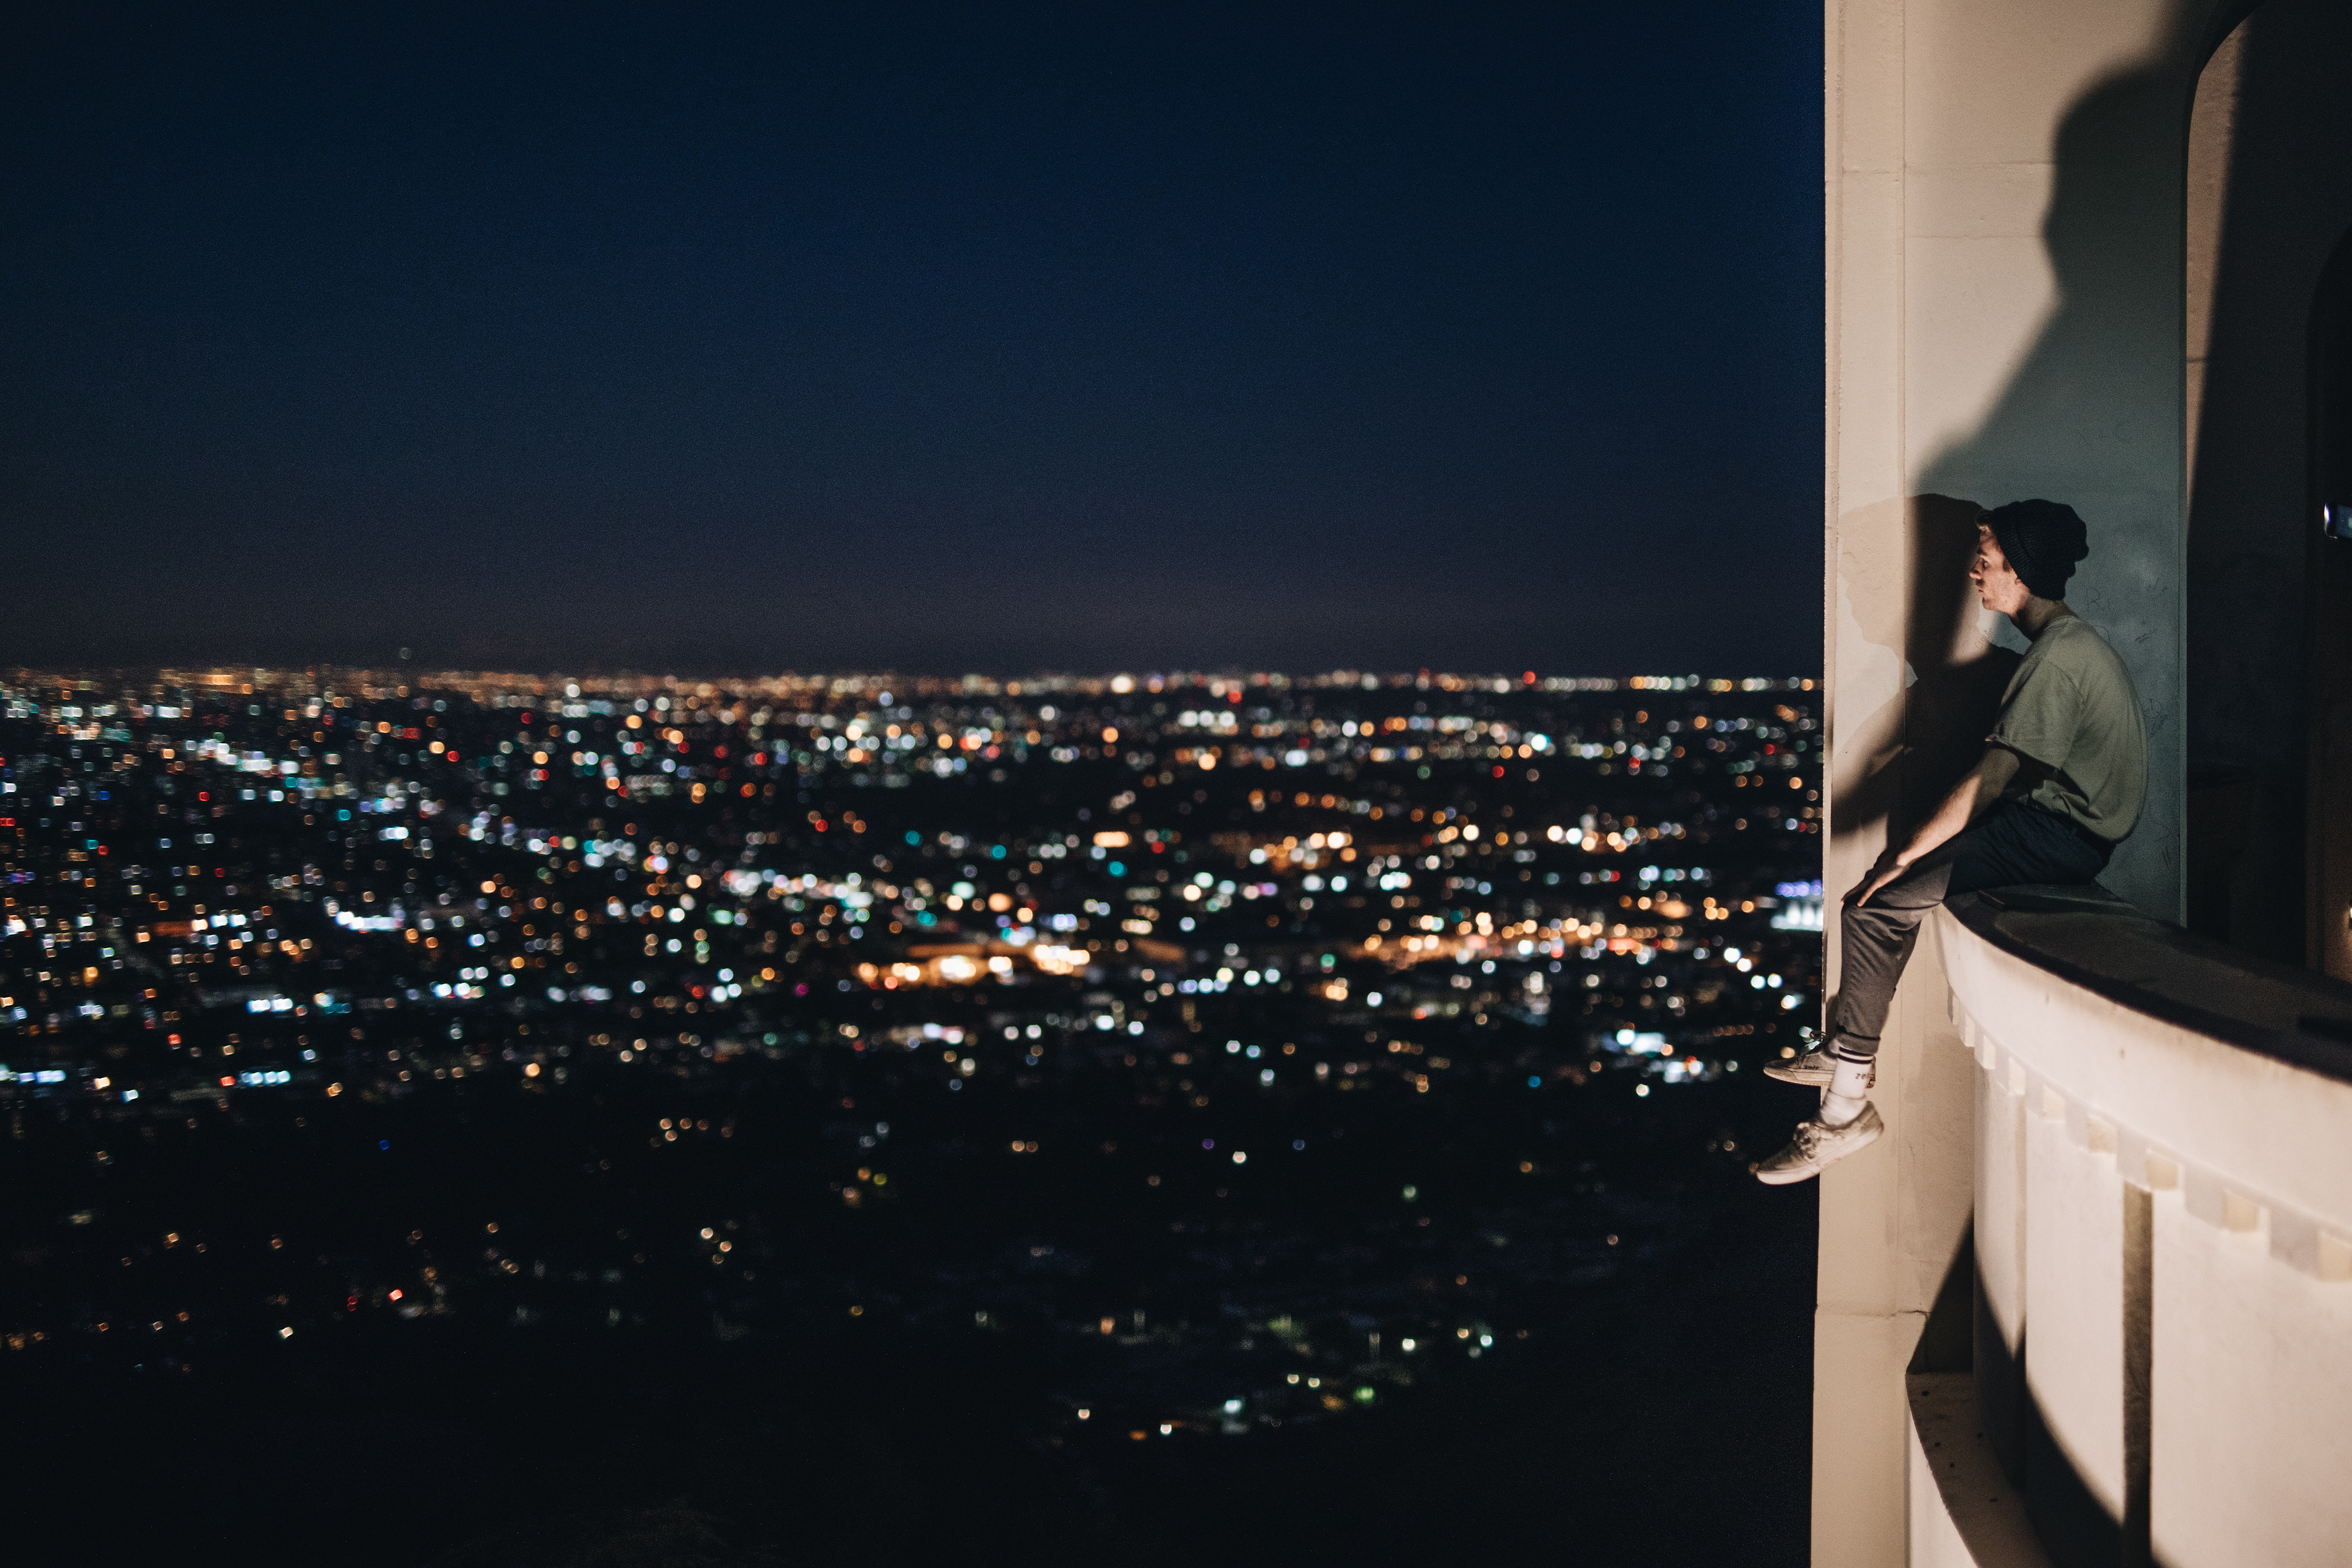 High risk - man on a ledge looking over a city - Petros, Resilience for life